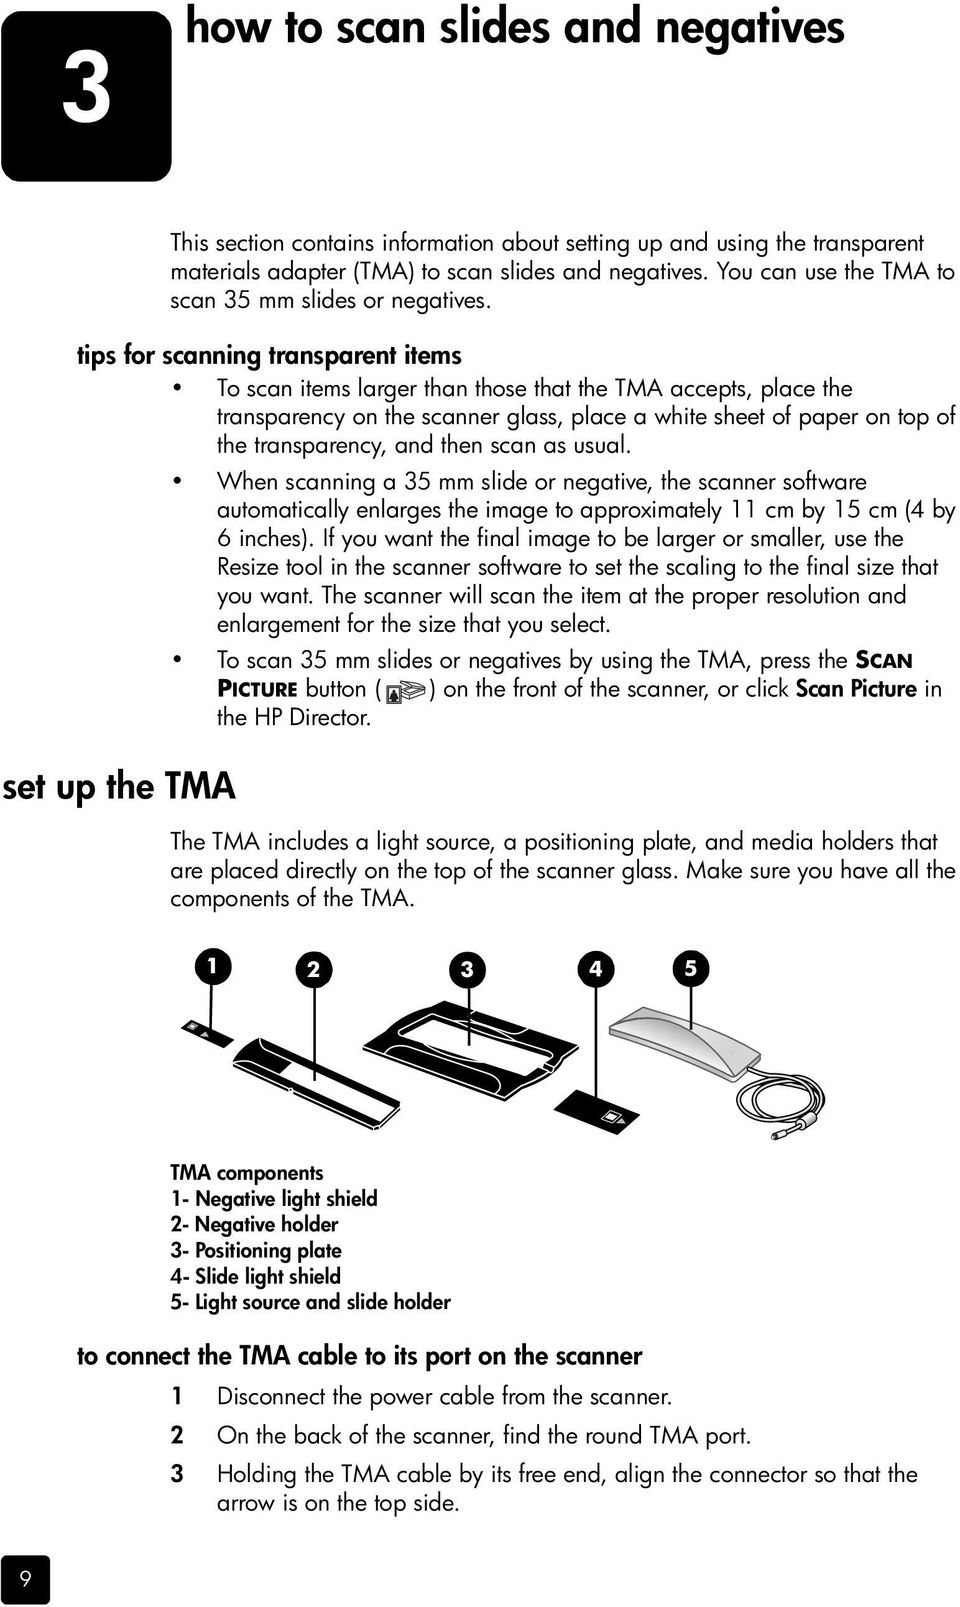 tips for scanning transparent items To scan items larger than those that the TMA accepts, place the transparency on the scanner glass, place a white sheet of paper on top of the transparency, and